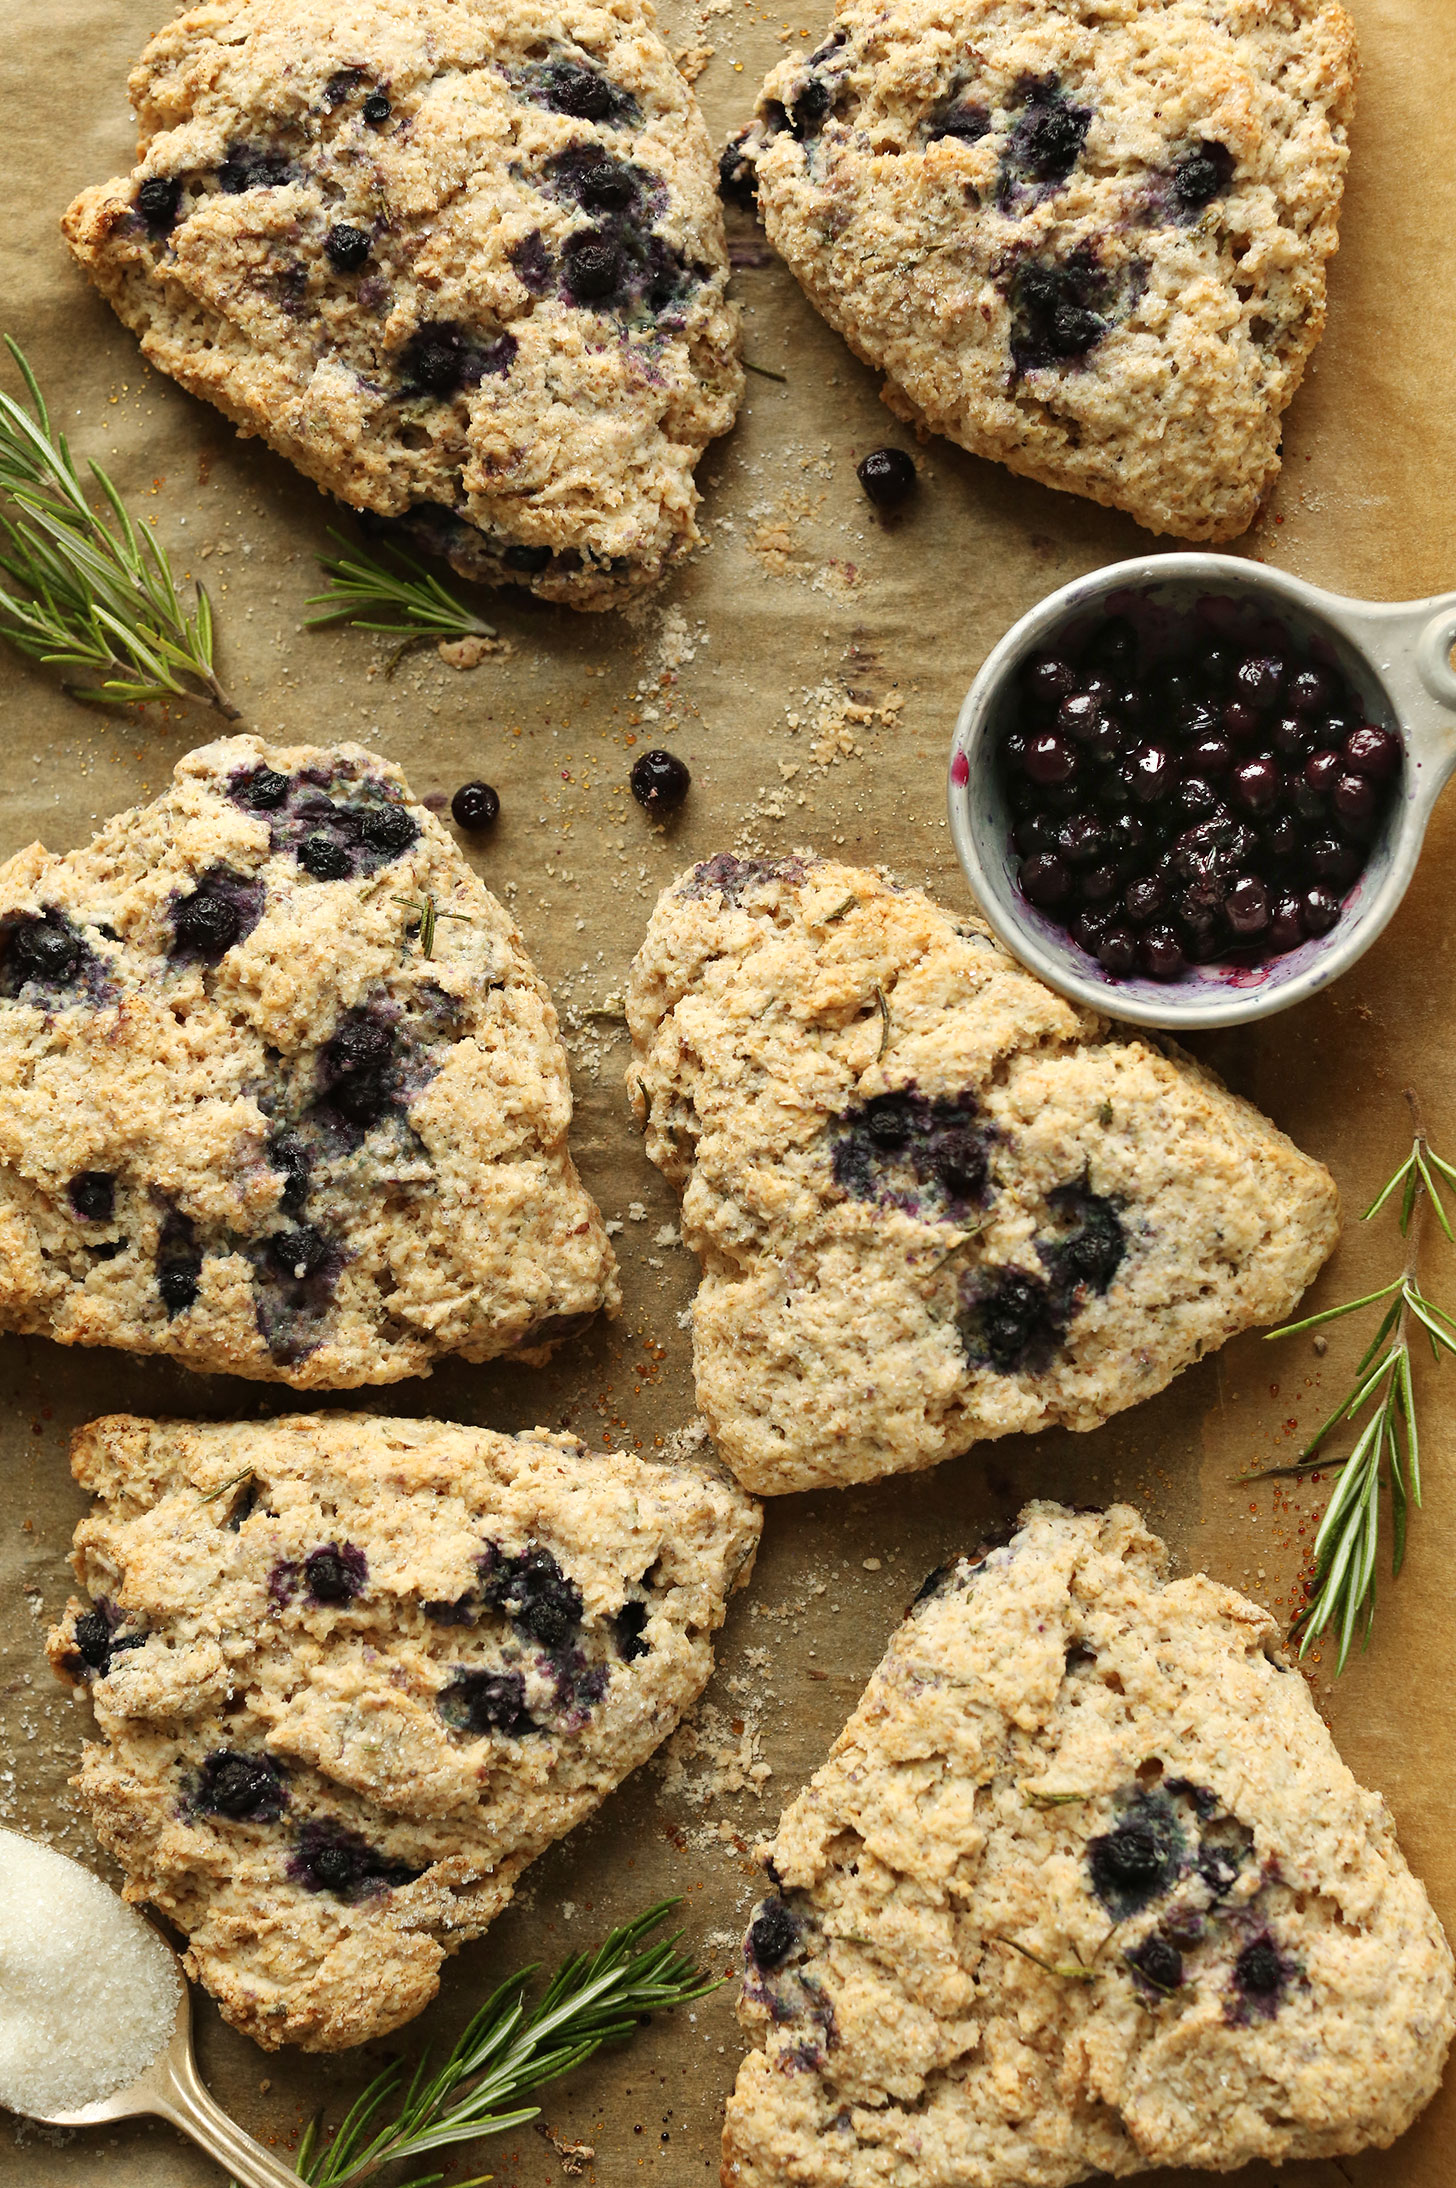 Parchment-lined baking sheet filled with Rosemary Blueberry Scones